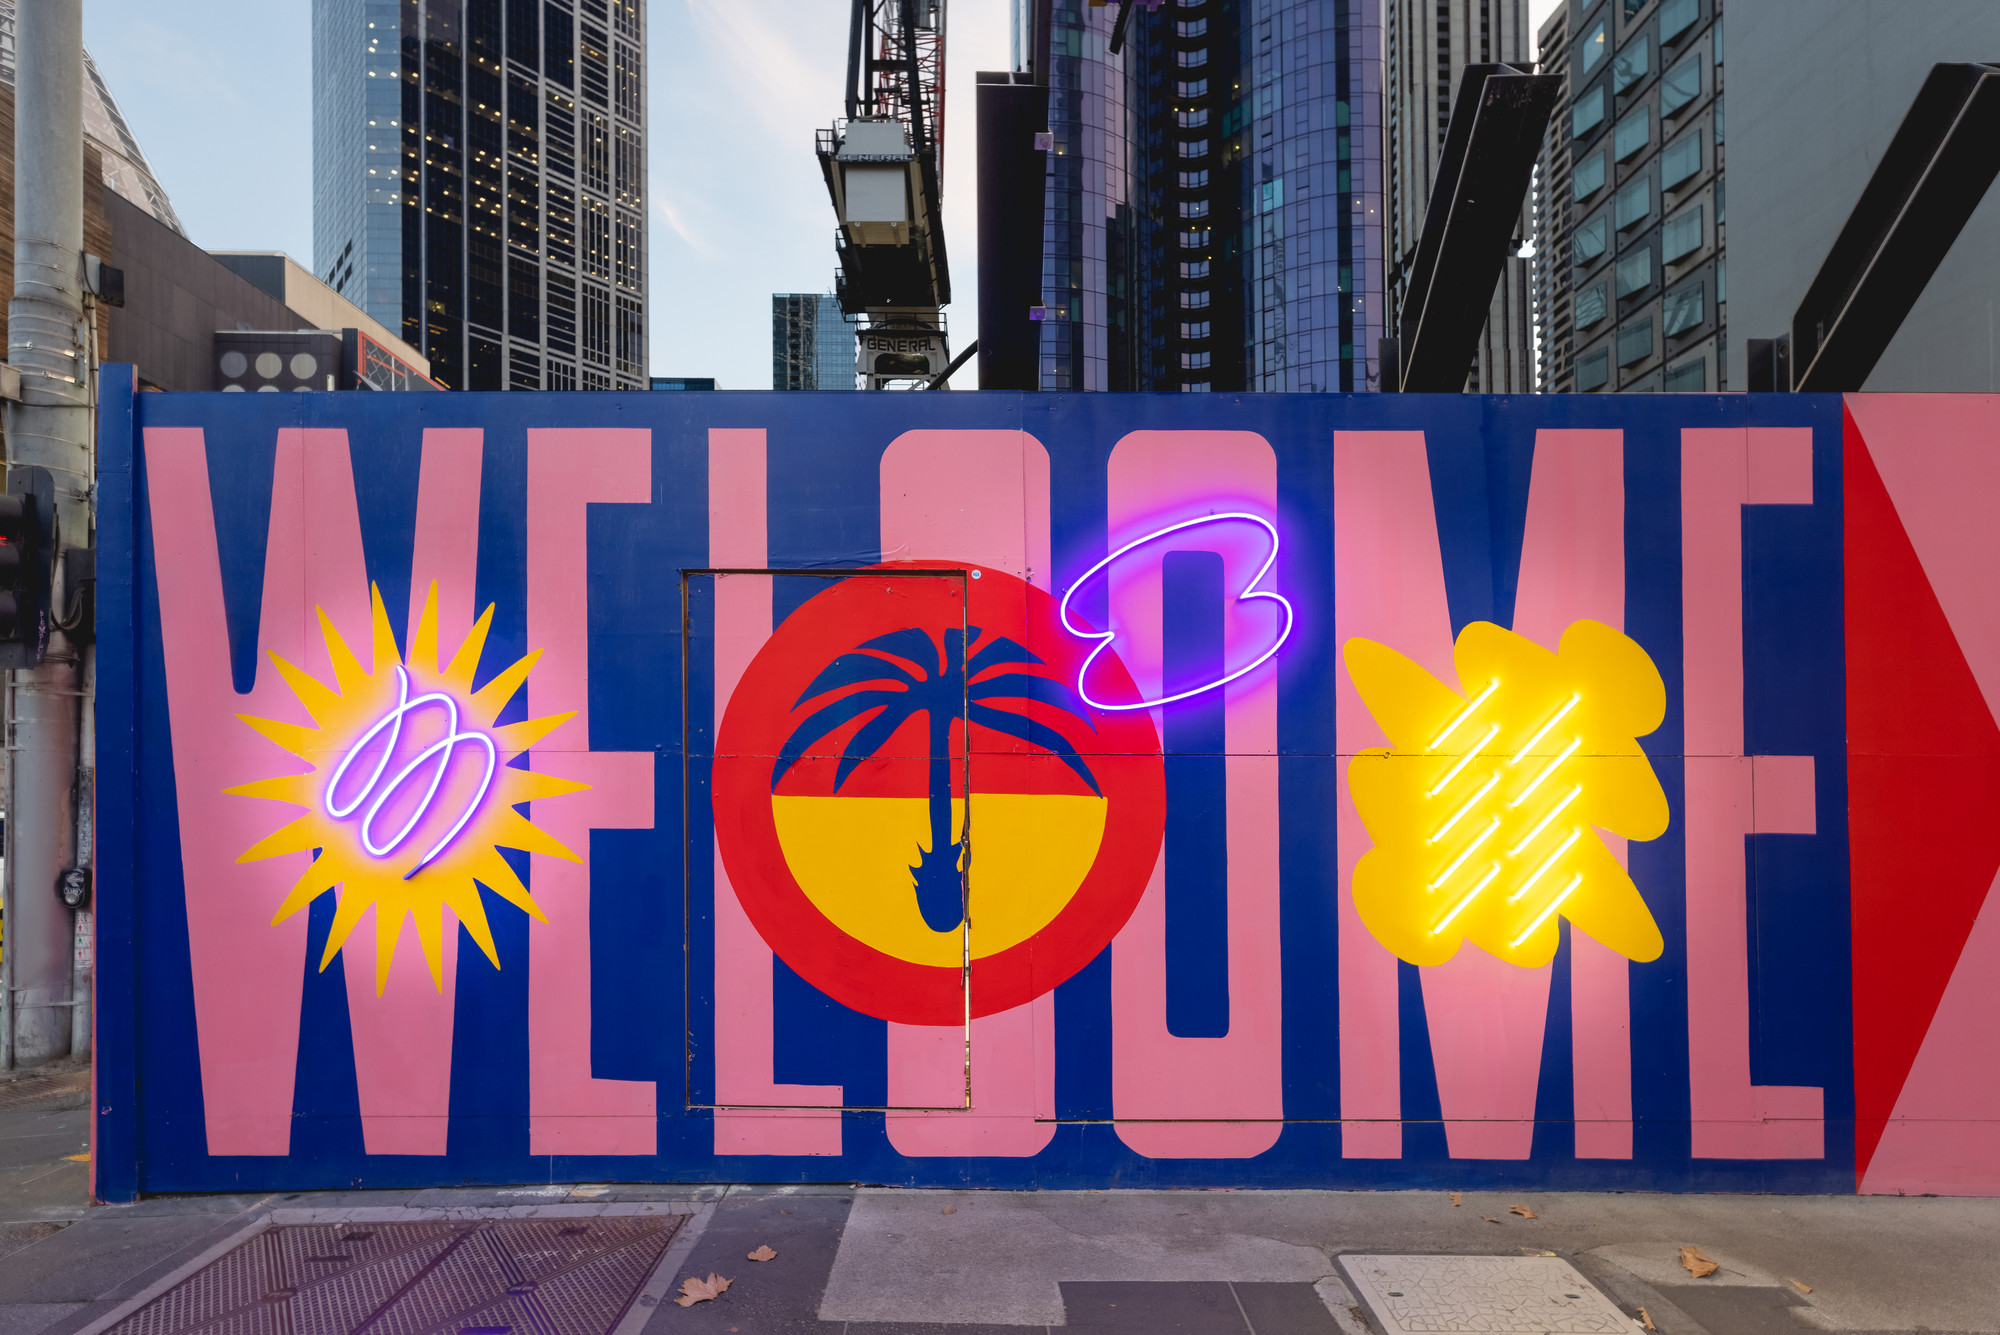 Artwork on a temporary construction fence says 'welcome' with neon lights in front of skyscrapers